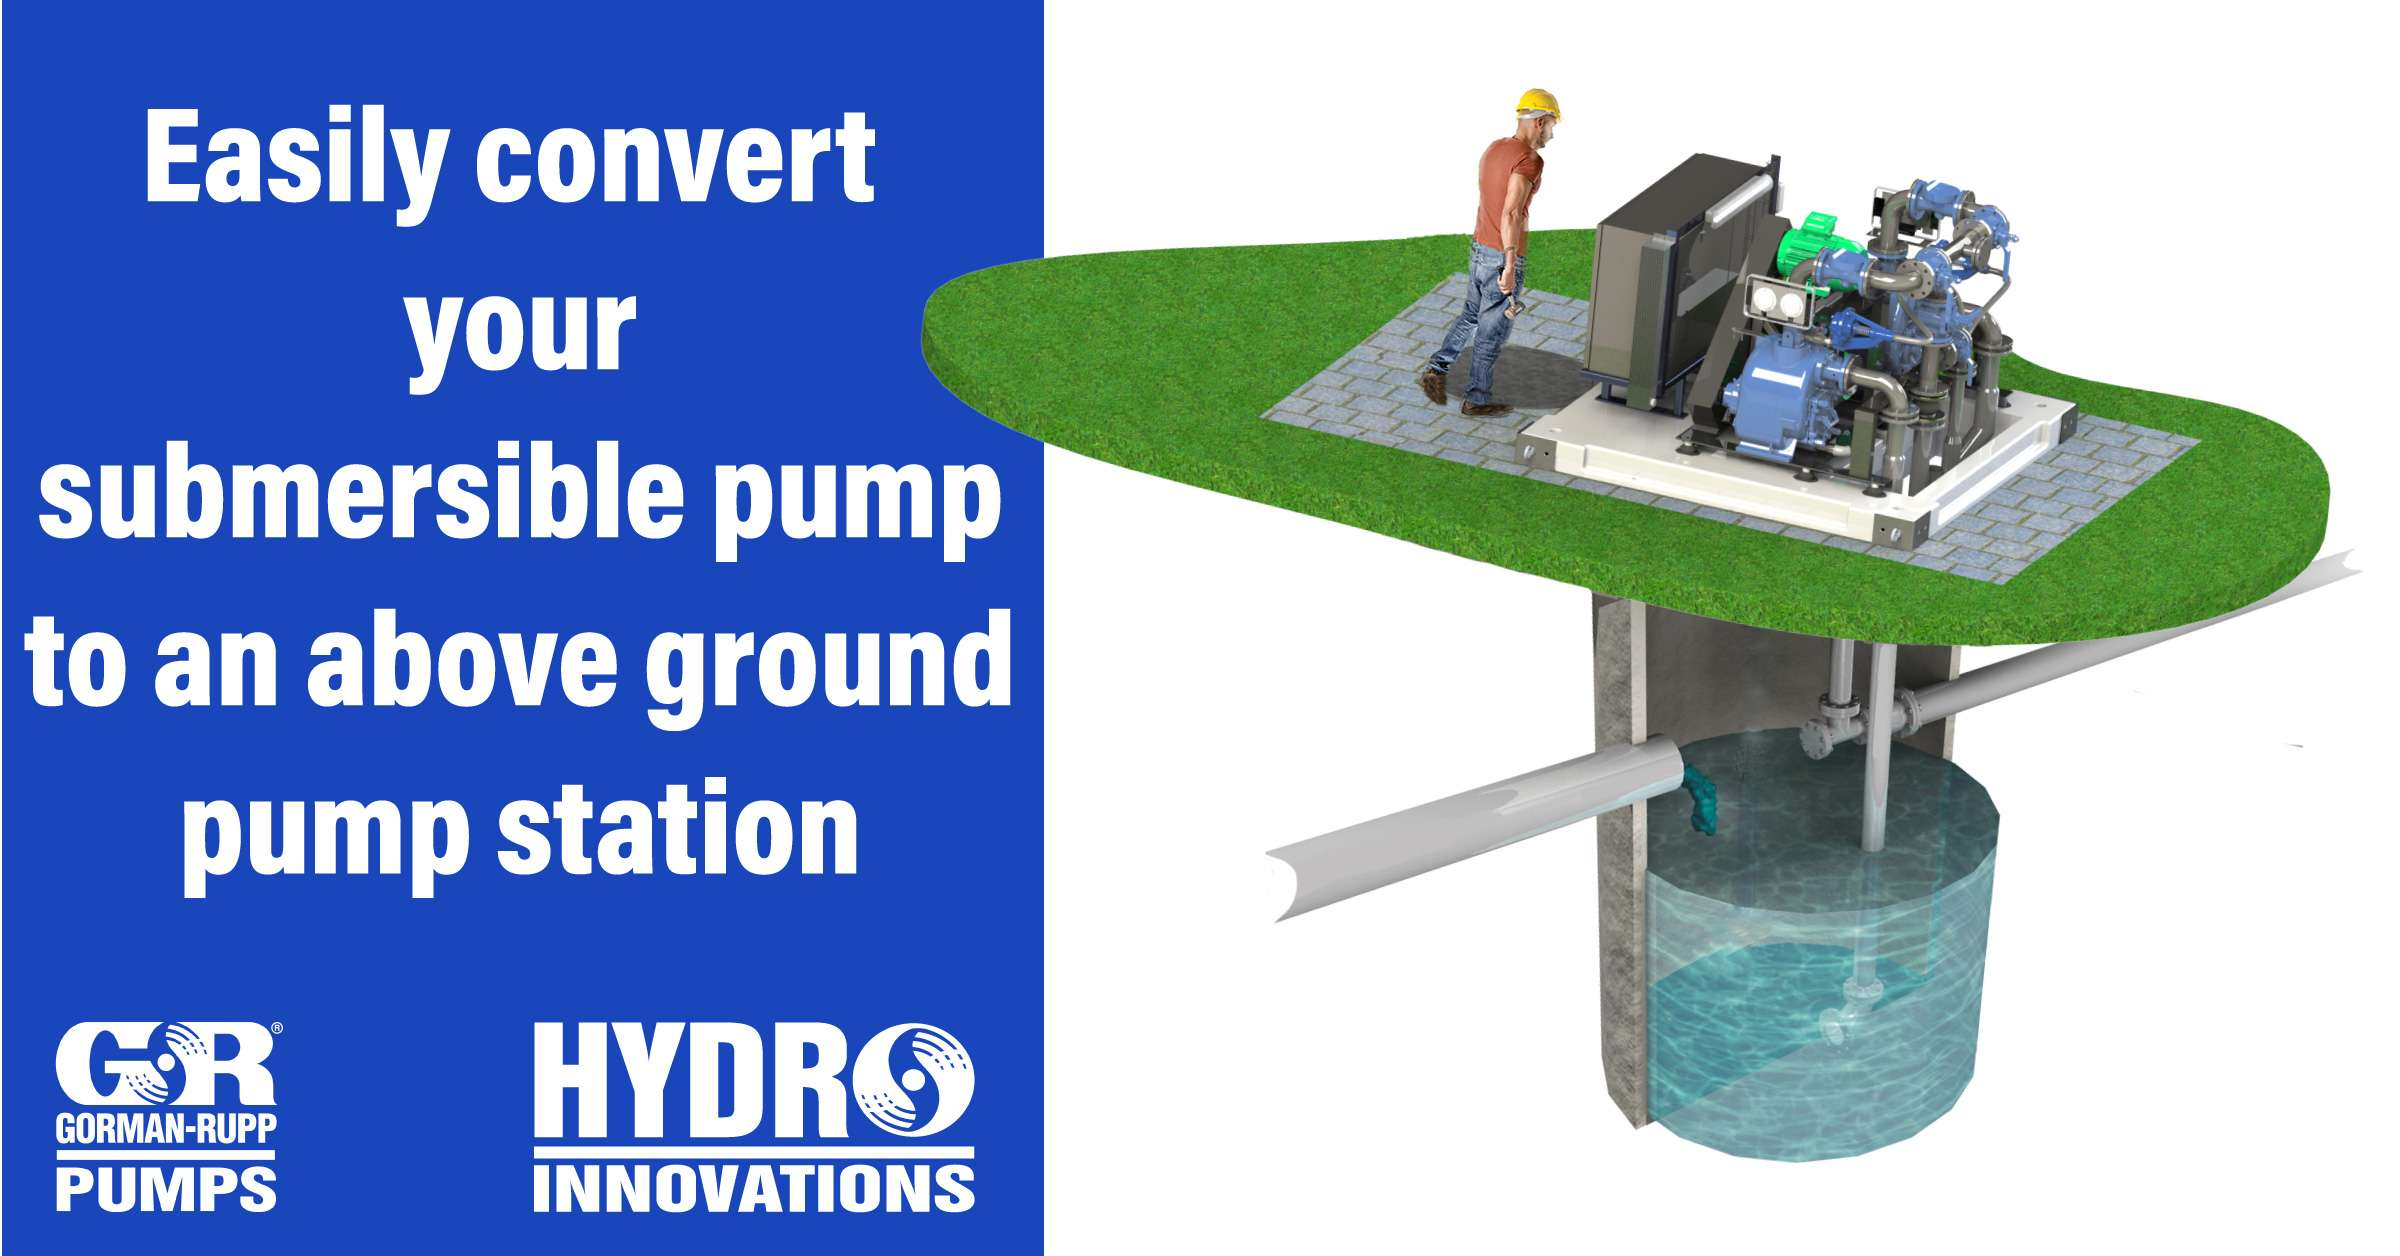 easily convert your submersible pumps to an above ground pump station